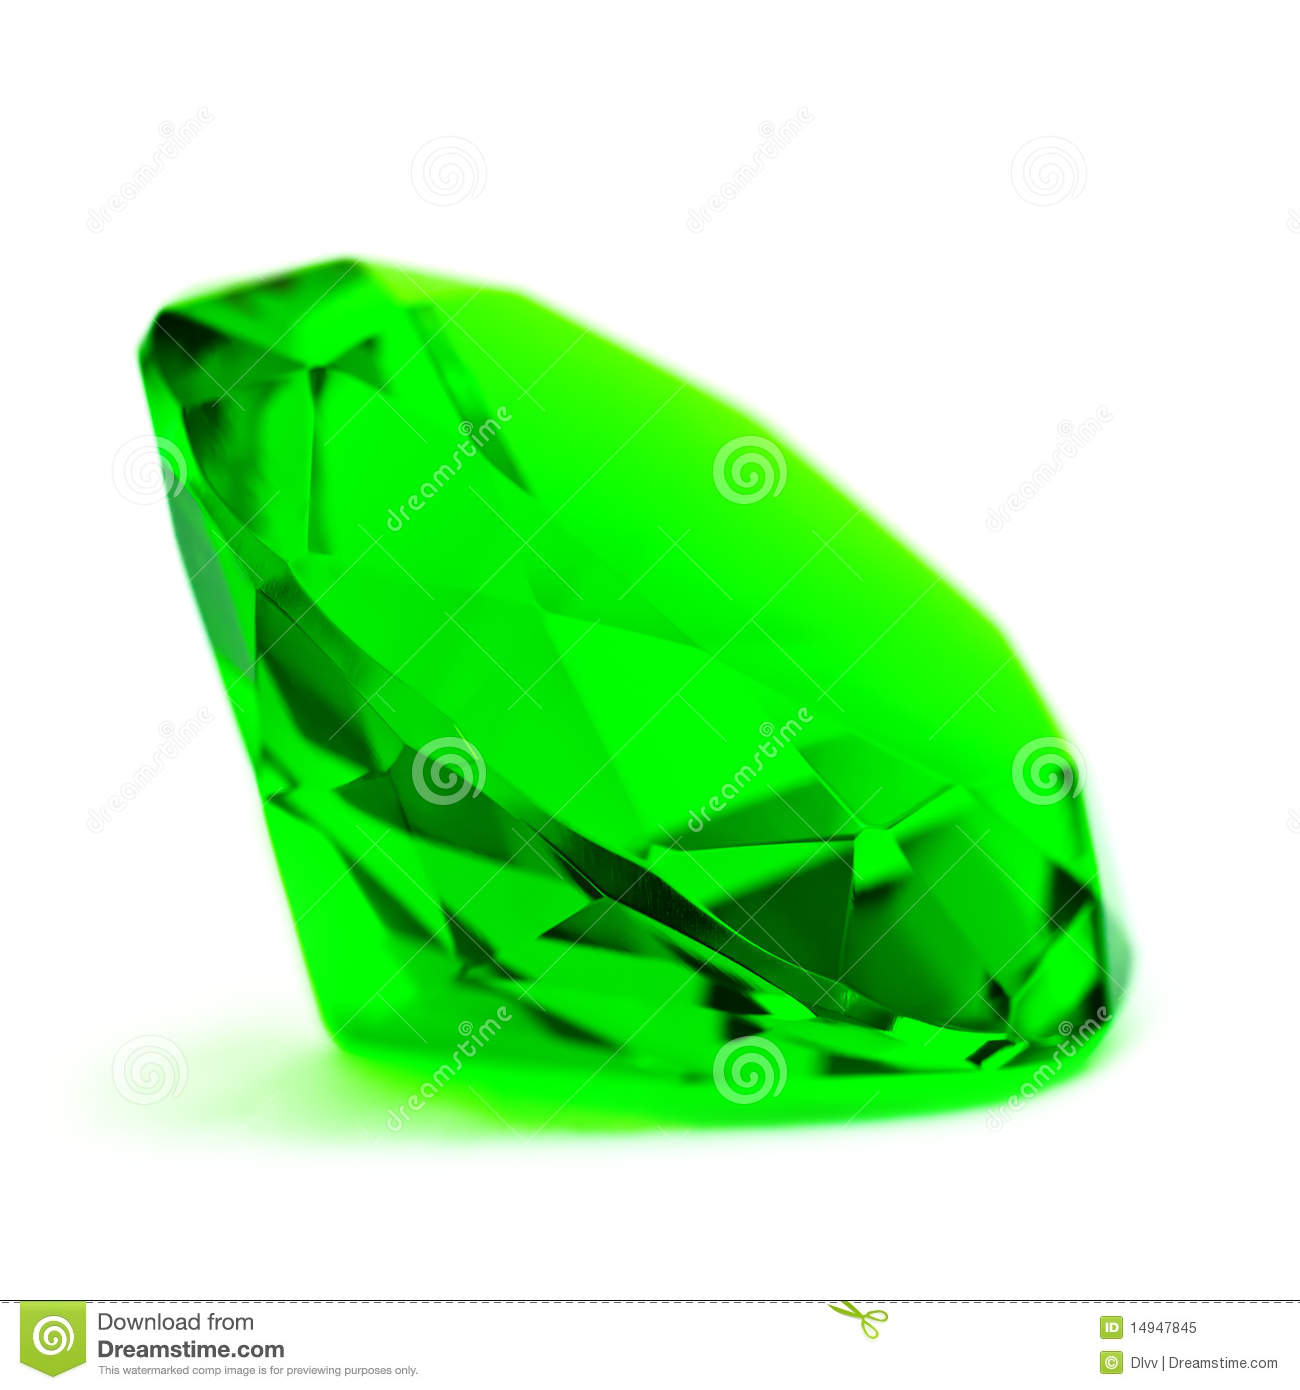 spinning background emerald videoblocks video gemstone loop green motion gem zpdmkux wedding stone